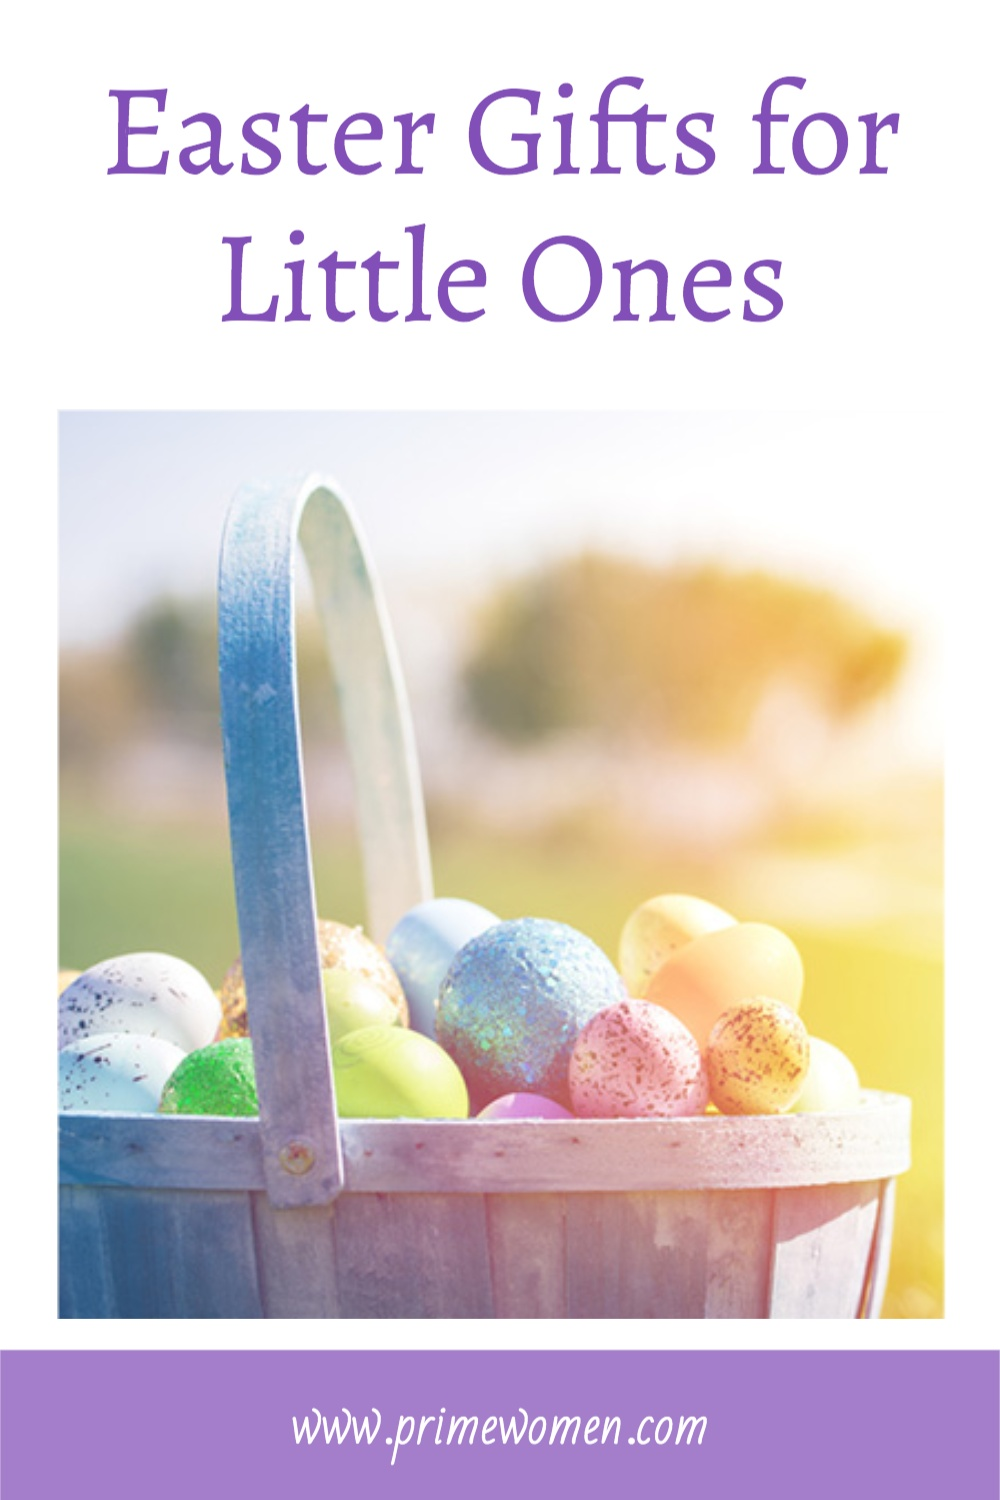 Easter gifts for young children